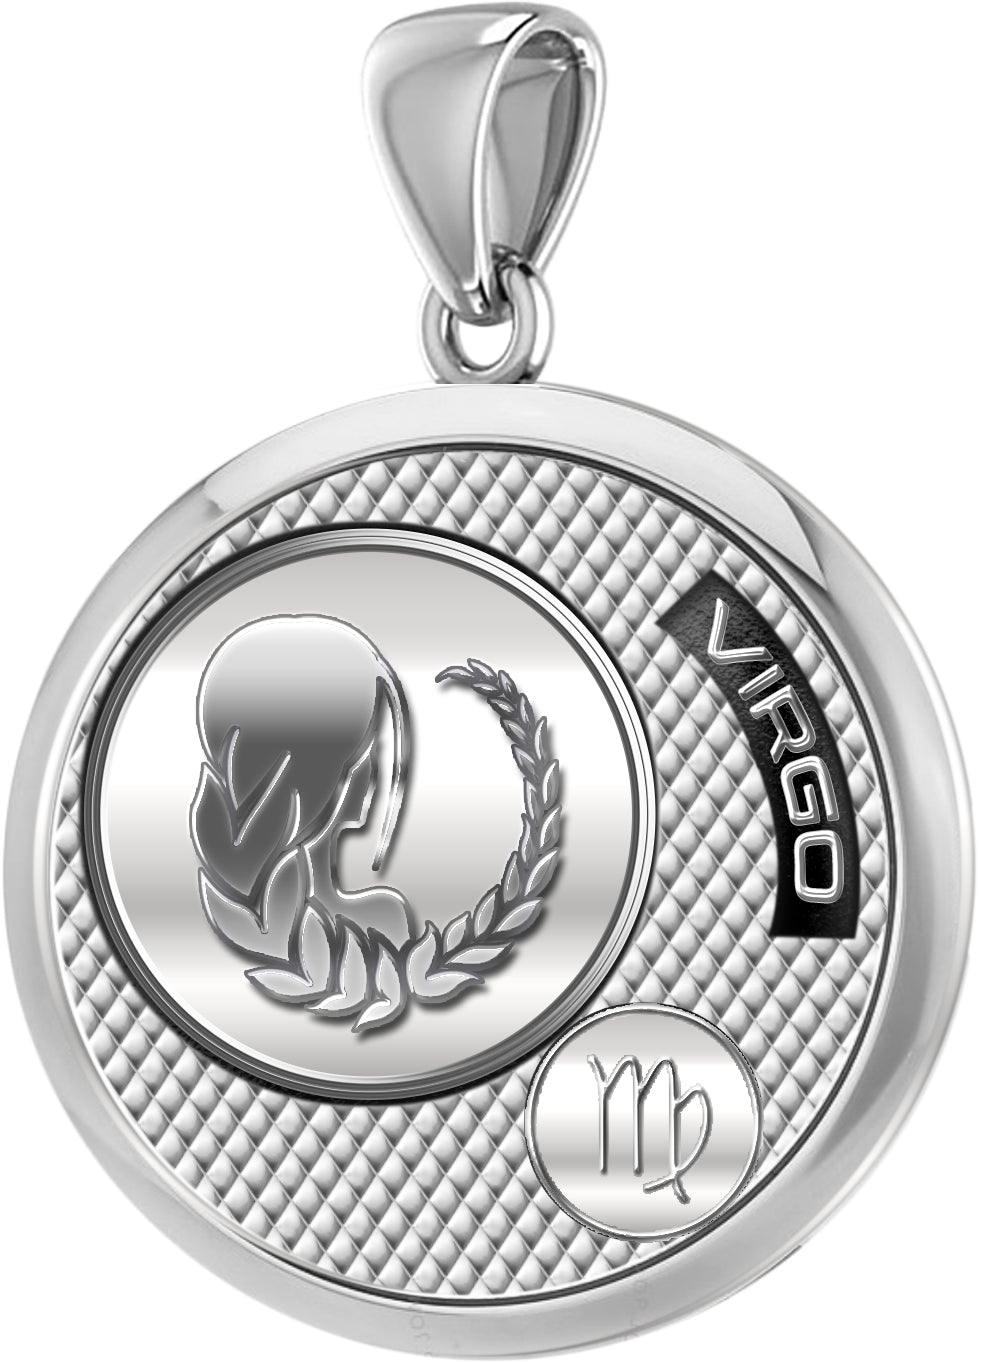 Virgo Necklace In Sterling Silver - Pendant Only